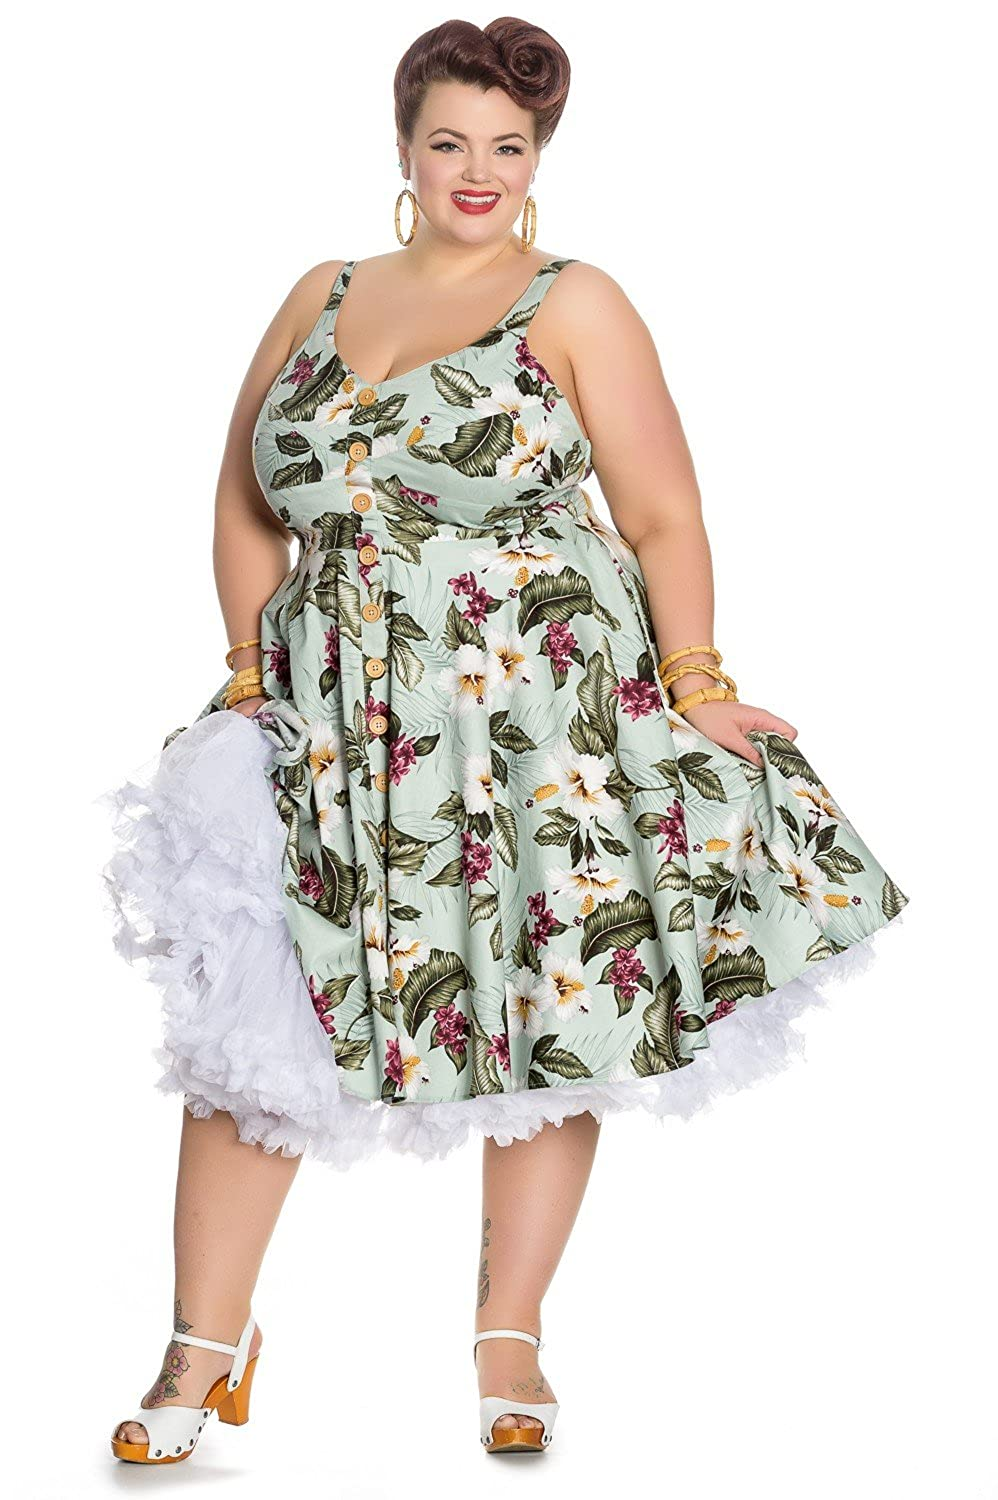 1950s Costumes- Poodle Skirts, Grease, Monroe, Pin Up, I Love Lucy Hell Bunny Tahiti Tropical Floral 50s Vintage Rockabilly Flare Swing Party Dress $61.99 AT vintagedancer.com